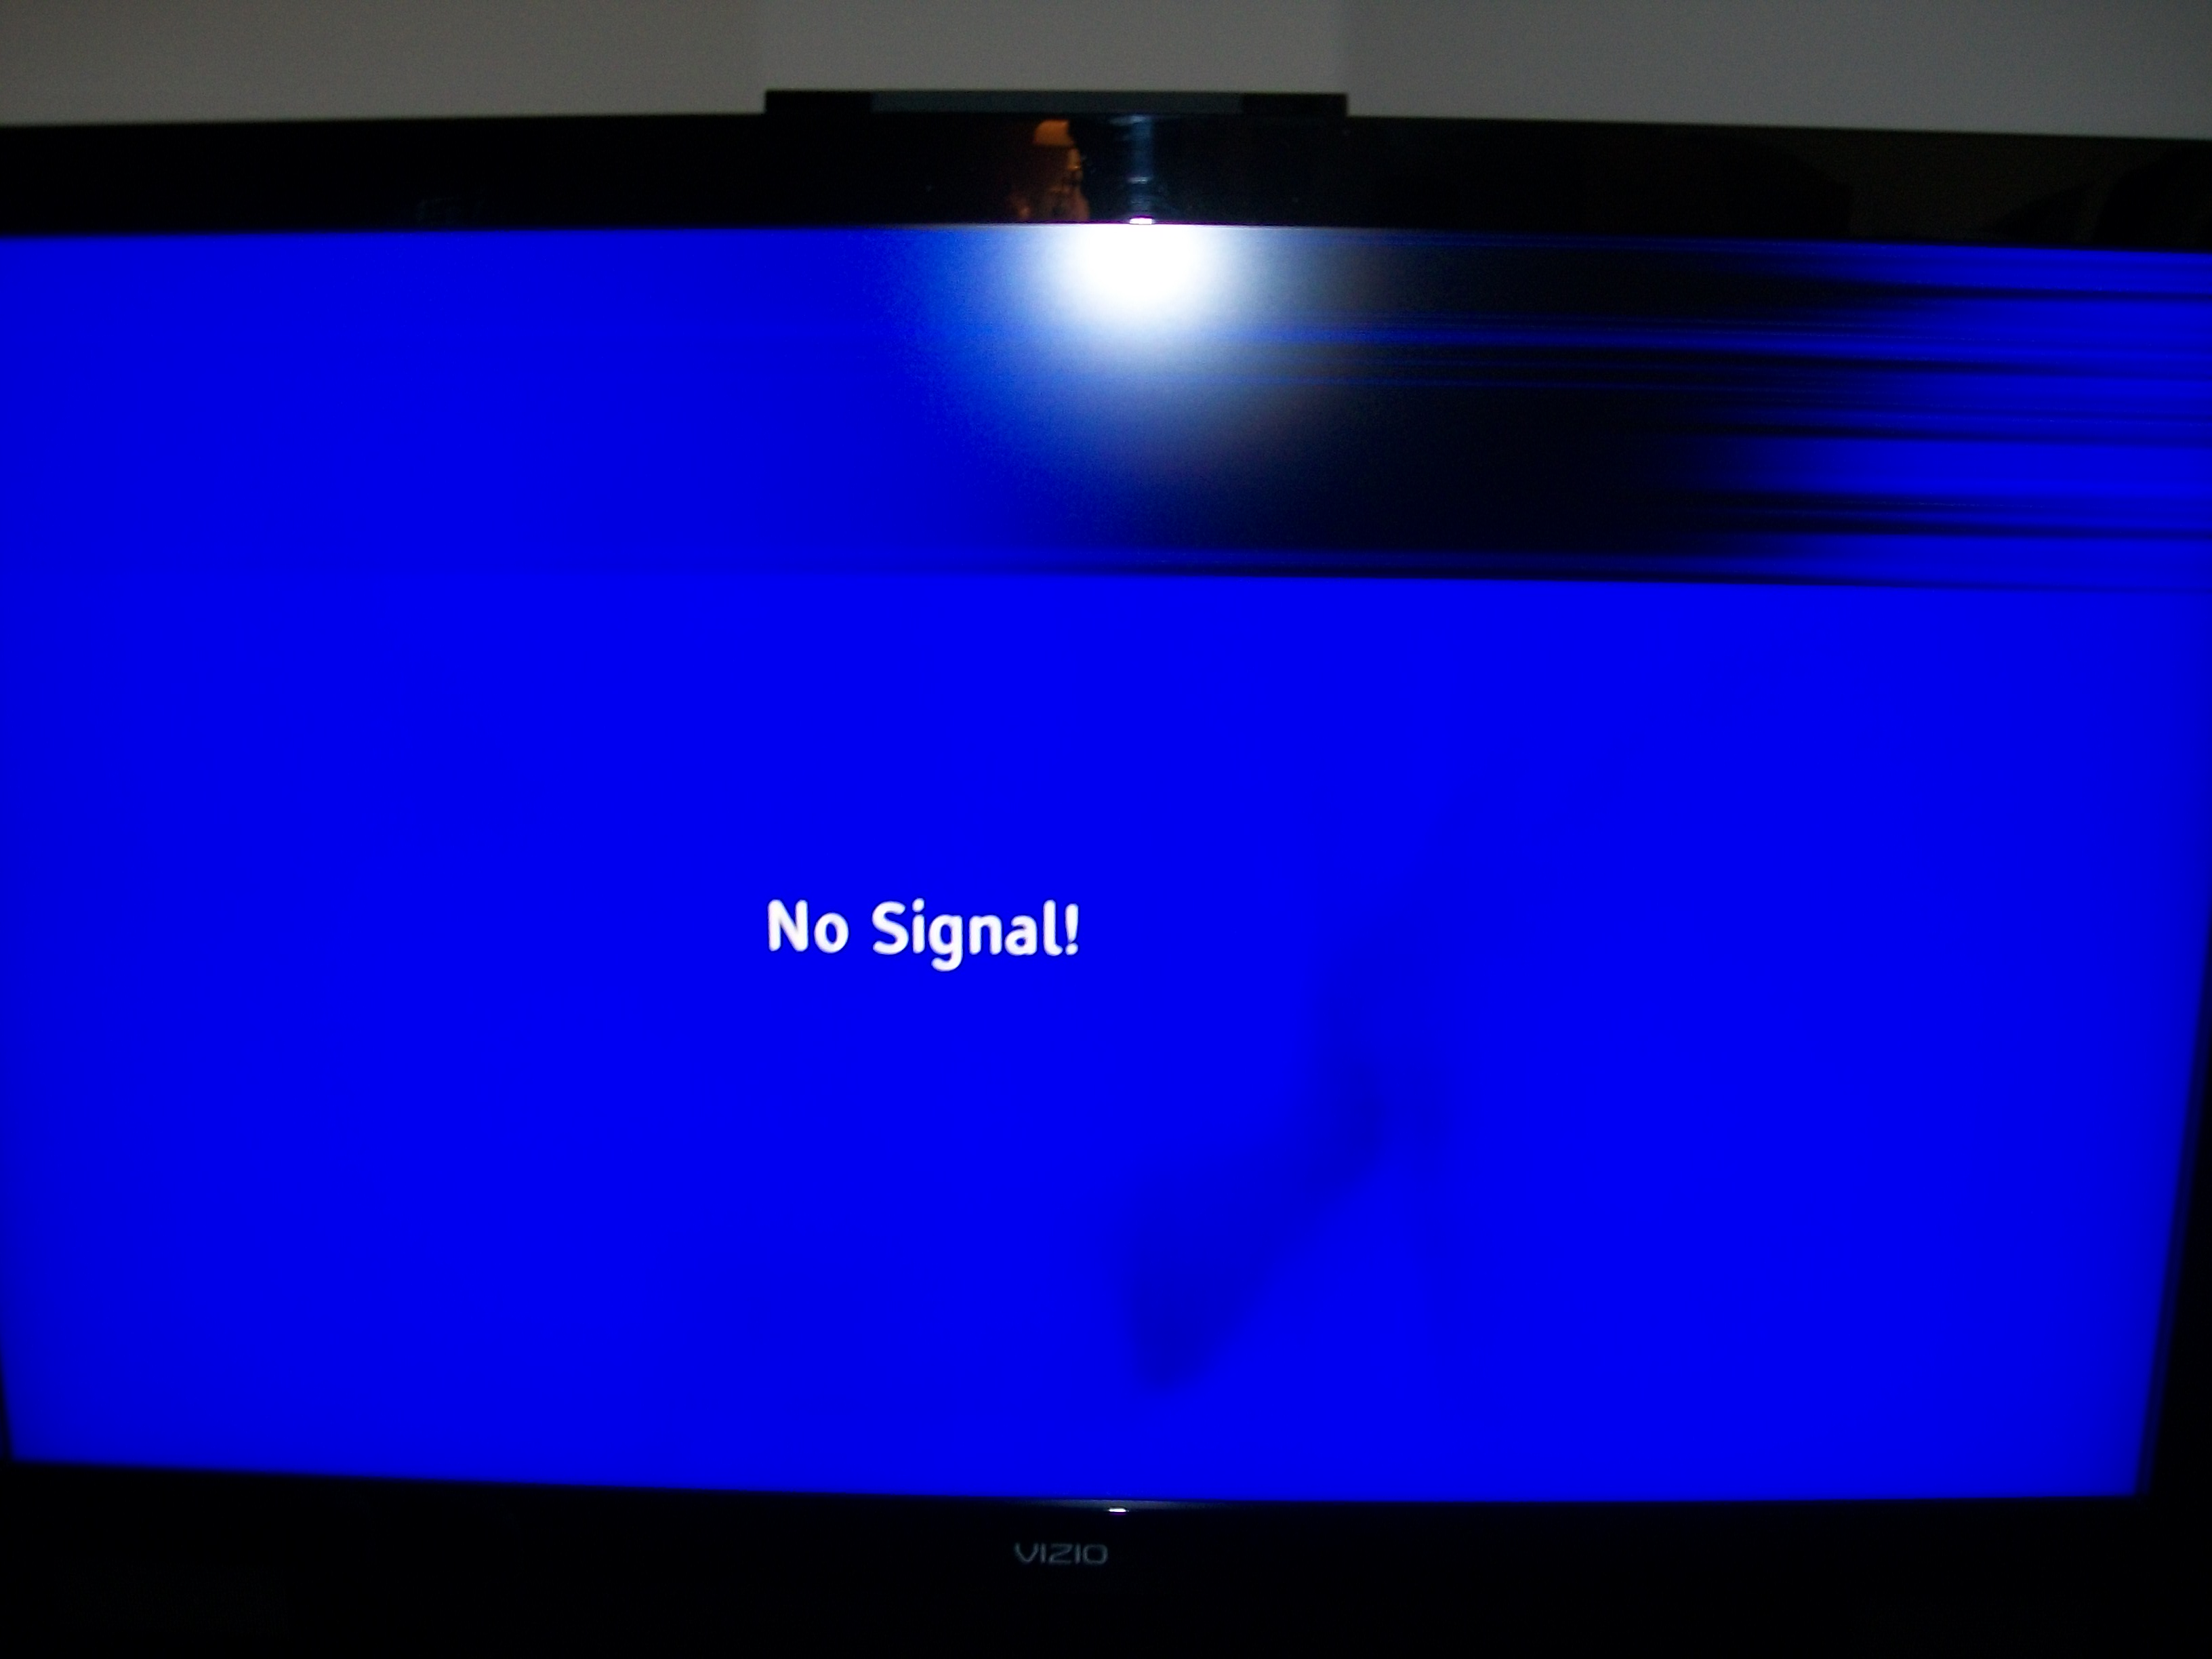 Vizio Vw46l Top 25 Of Screen Is Flickering Horizontal Black Lines At Times It Go Away And At Times All Black This Has